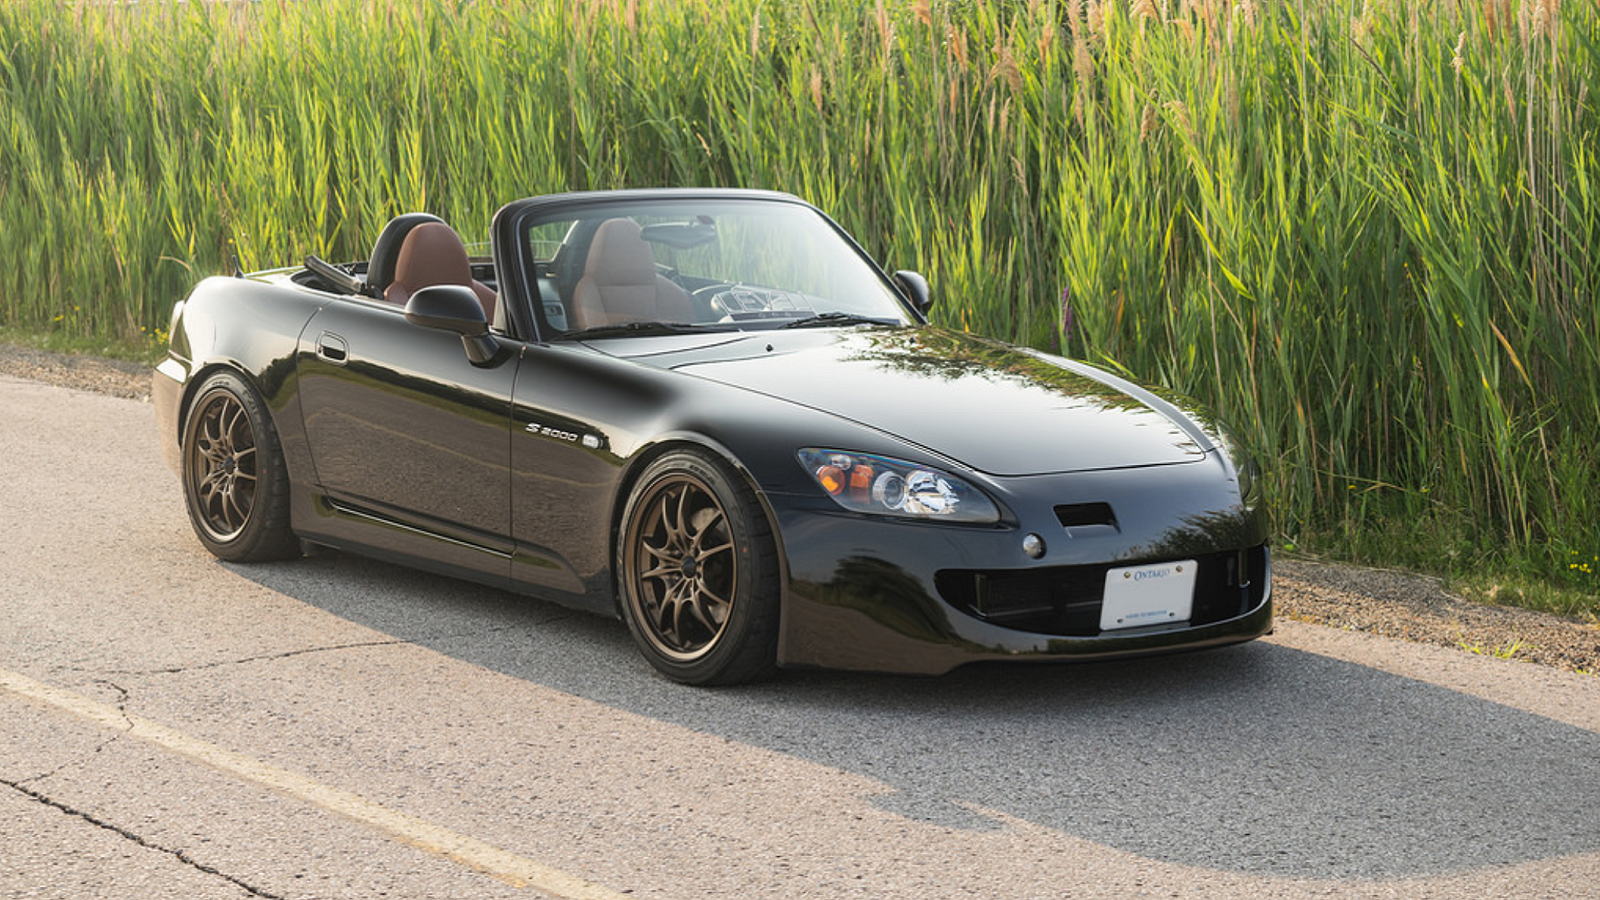 AP2 S2000 Build: Slow, Simple, Undeniably Awesome